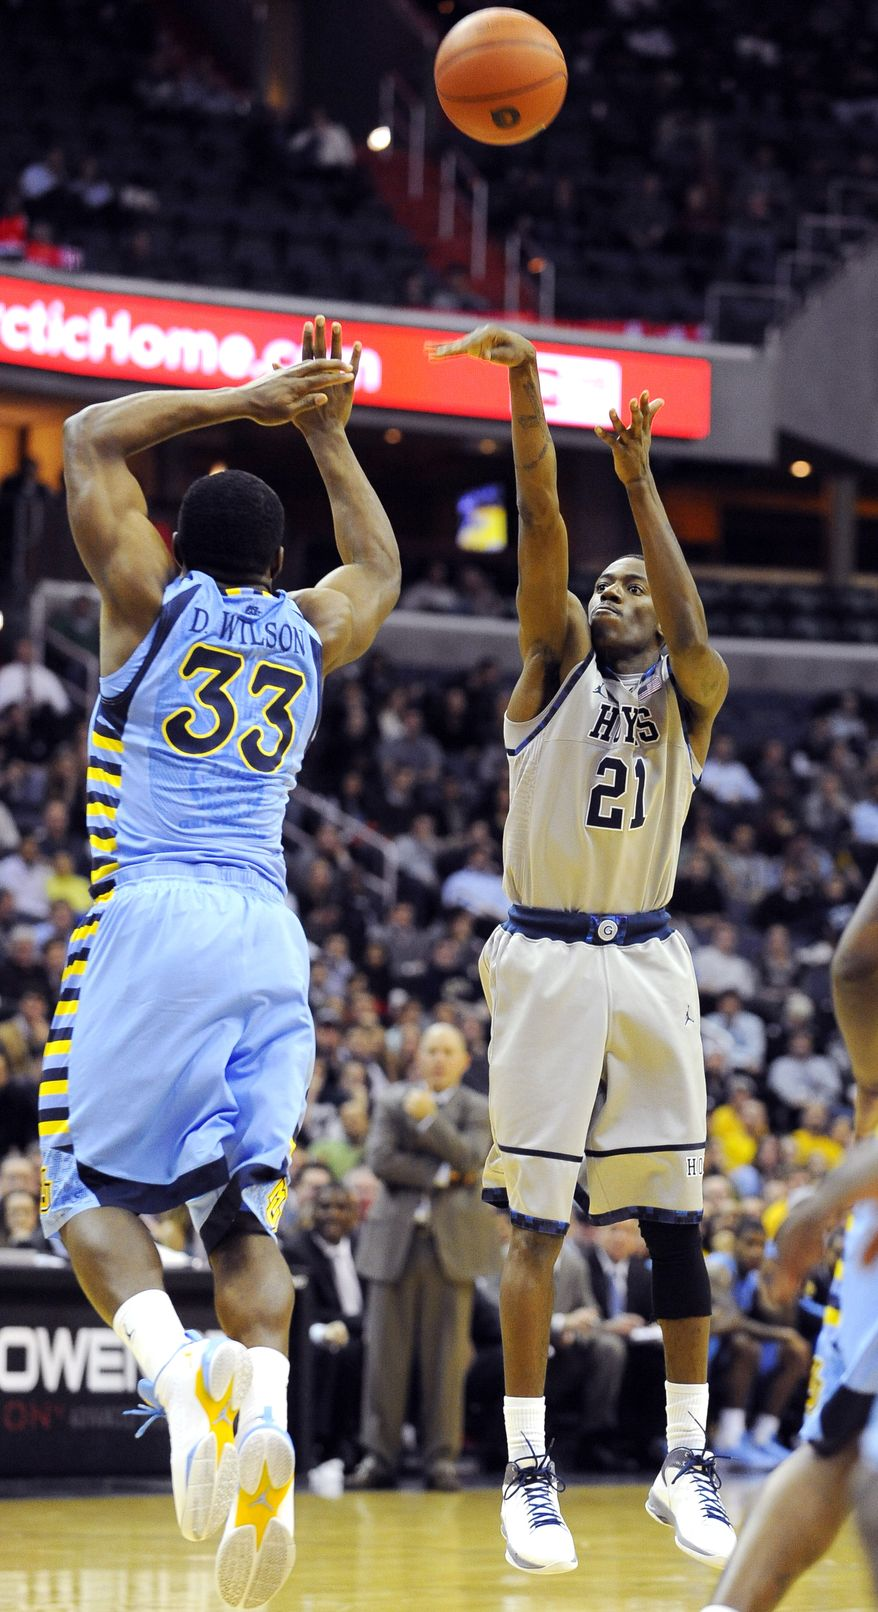 Georgetown guard Jason Clark shoots 3-pointer over Marquette's Derrick Wilson during the second half, Wednesday, Jan. 4, 2012, in Washington. Georgetown defeated Marquette 73-70. (AP Photo/Richard Lipski)